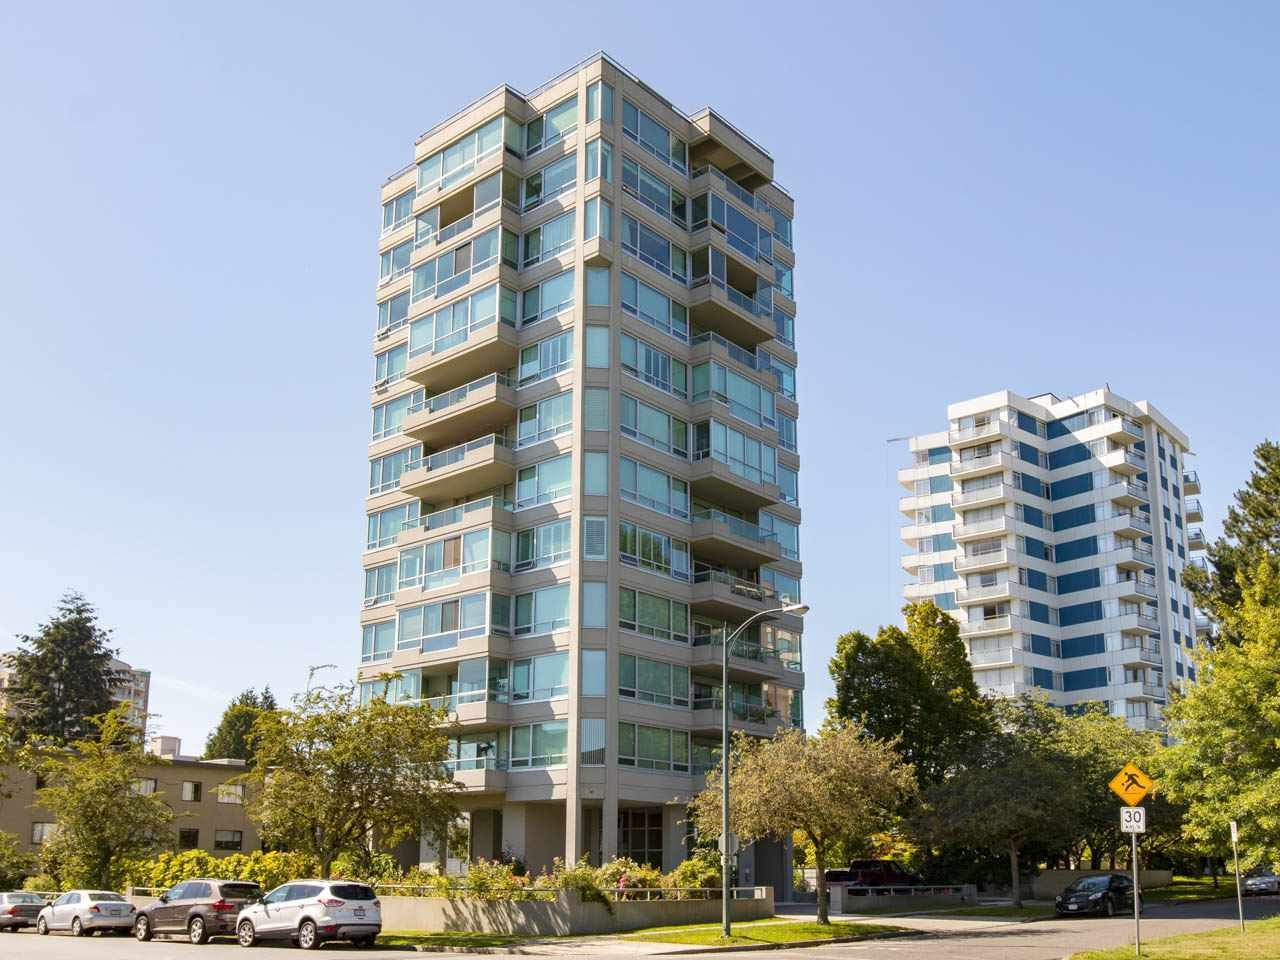 """Main Photo: 5 5885 YEW Street in Vancouver: Kerrisdale Condo for sale in """"Kerrisdale"""" (Vancouver West)  : MLS®# R2243002"""